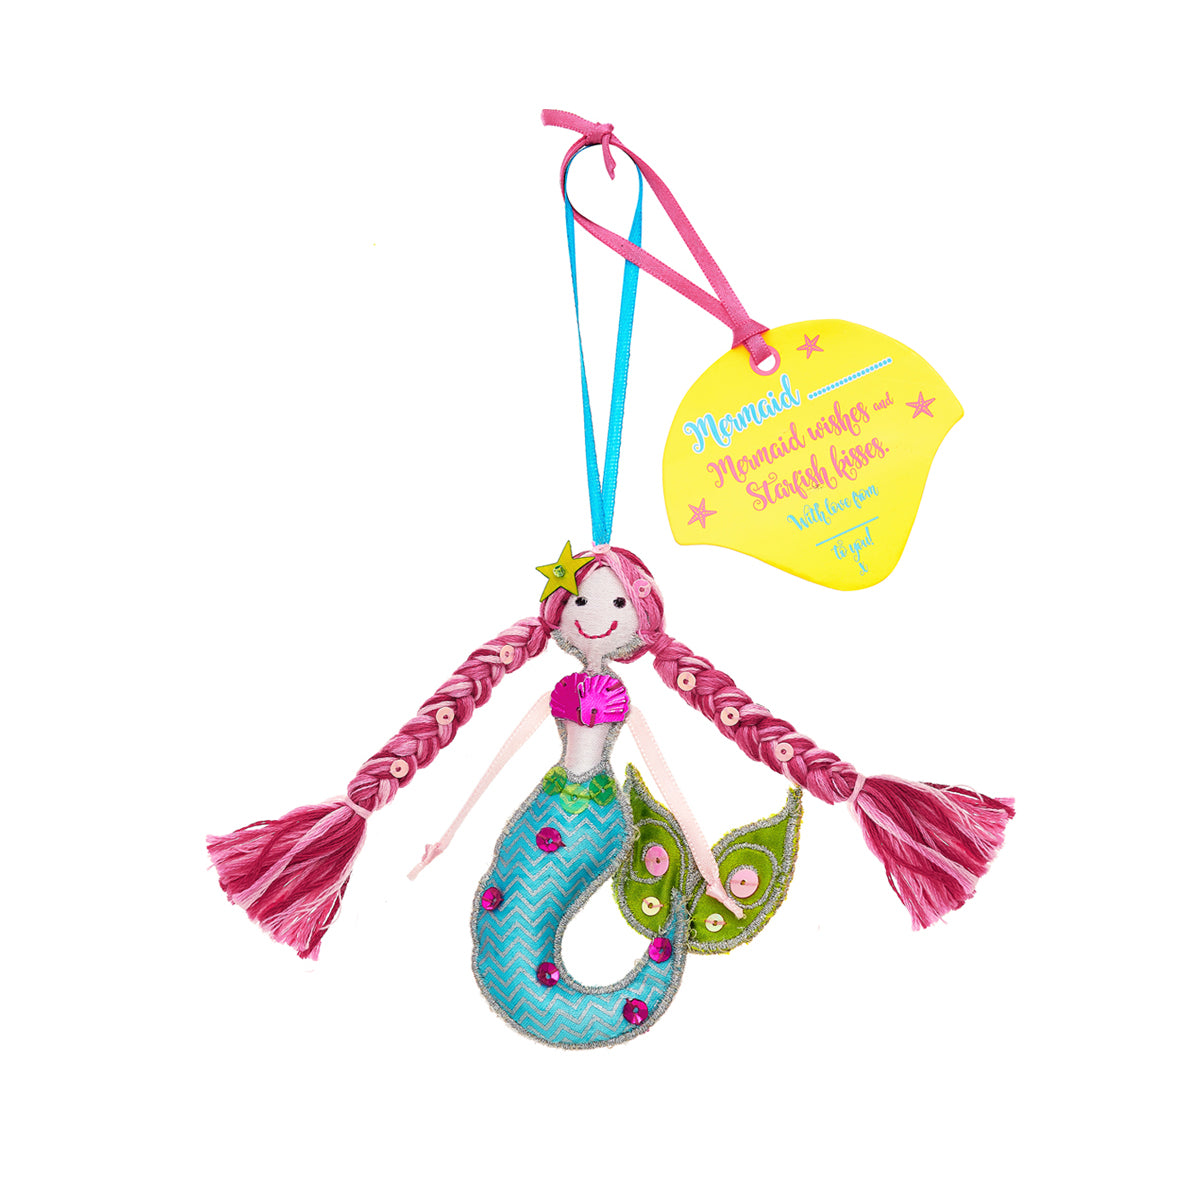 Fairtrade Mermaid with pink hair